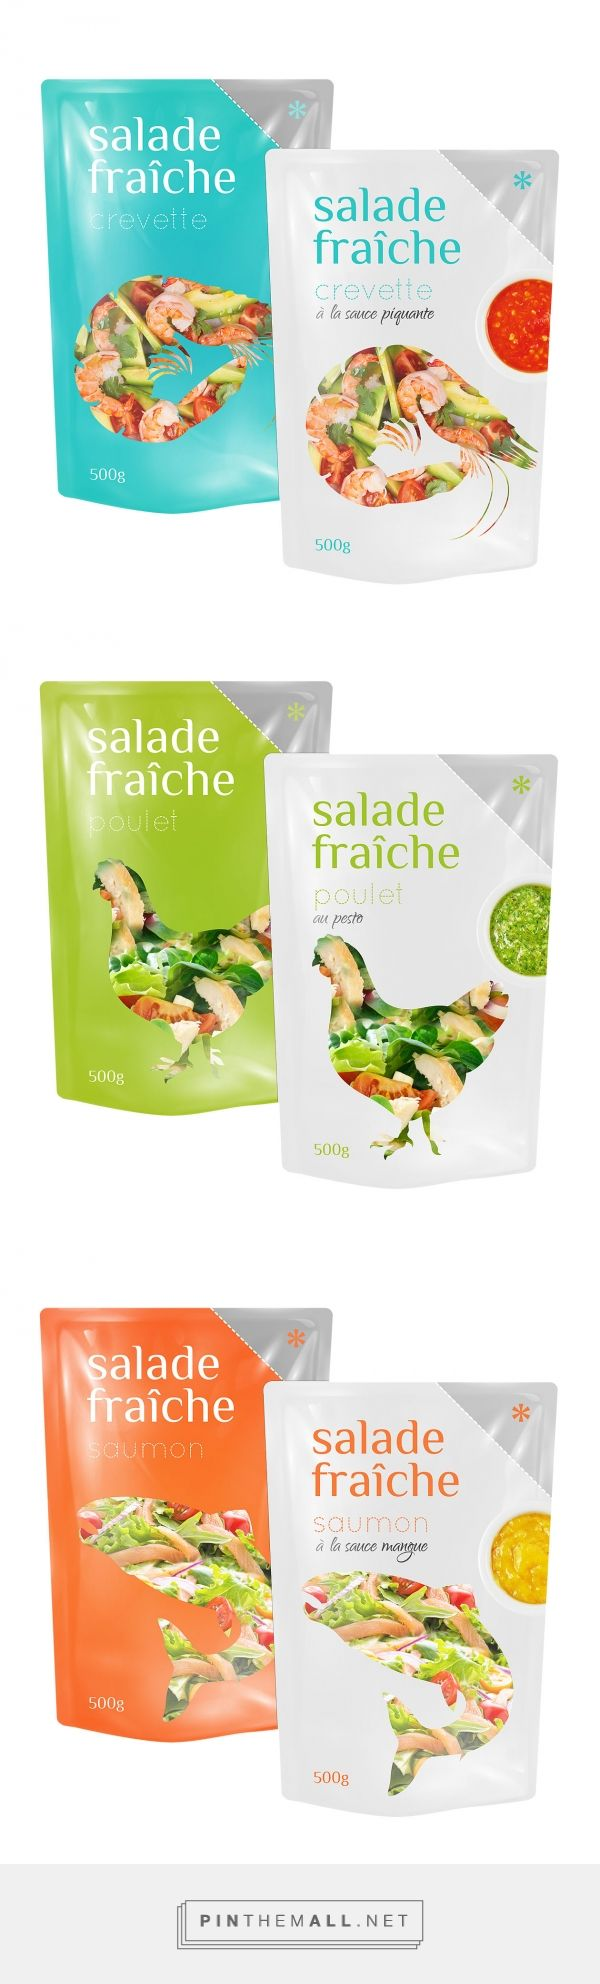 Salade Fraîche Plastic Packaging by MAISON D'IDÉE curated by Packaging Diva PD. Love this tasty looking salad packaging. Who's ready for lunch?